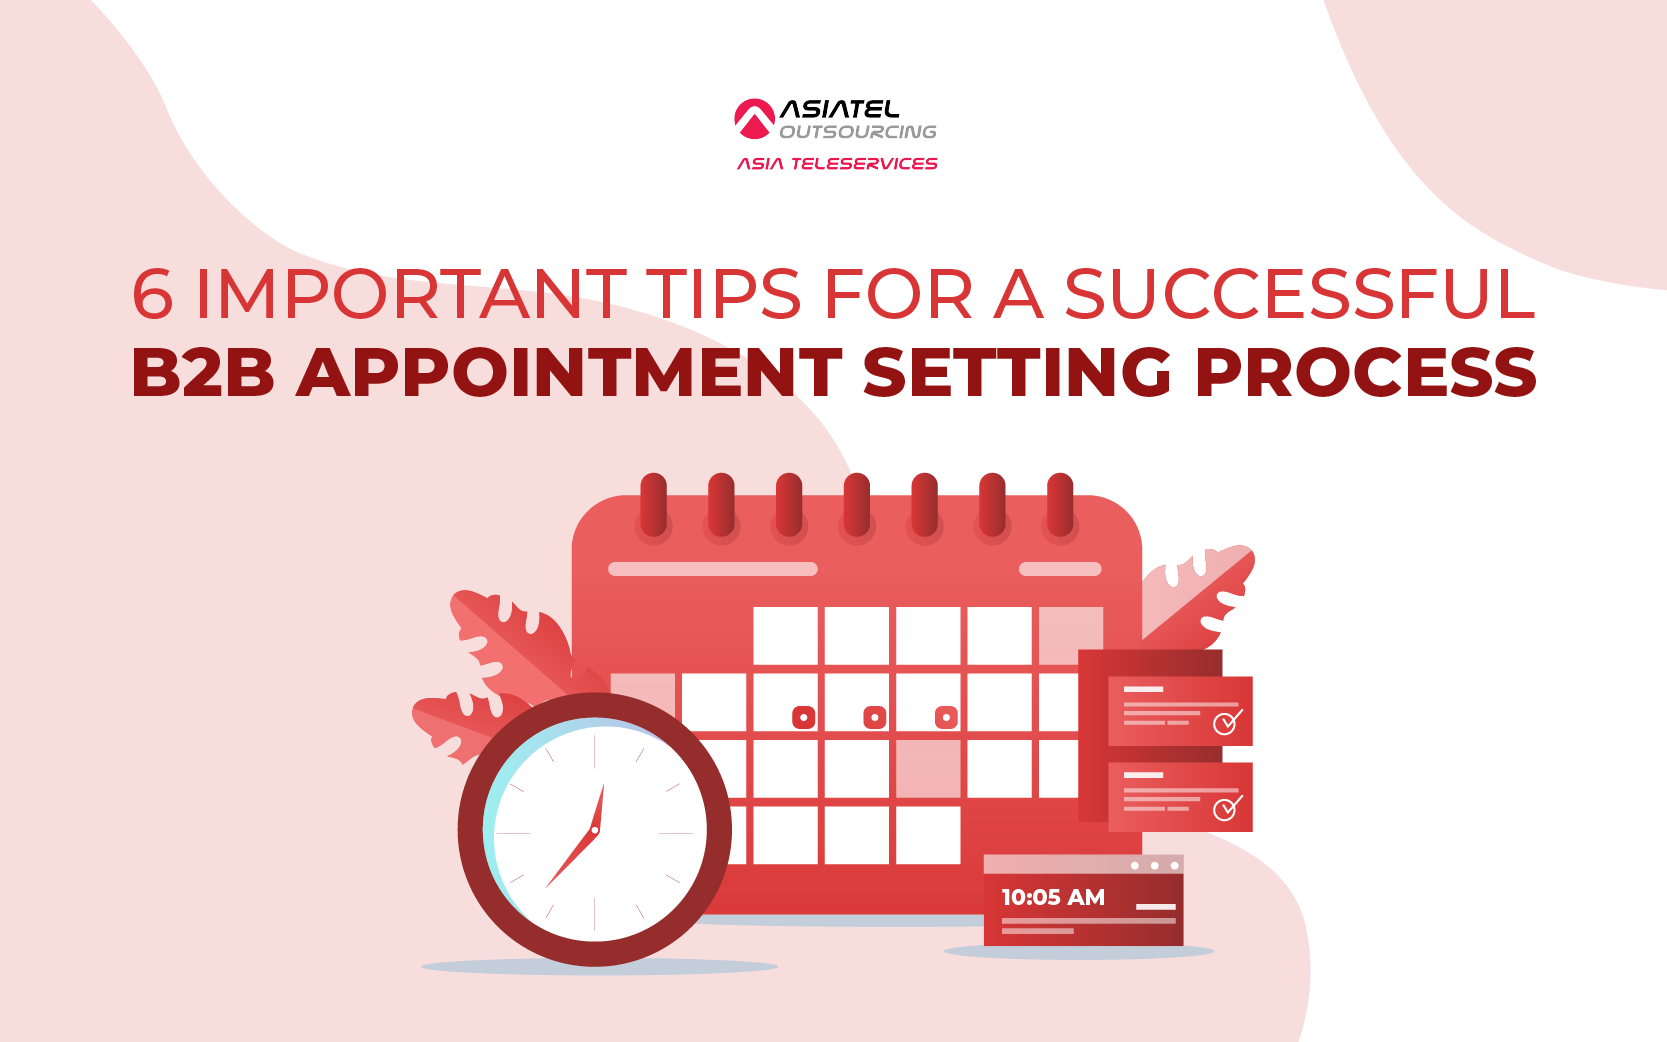 6 Important Tips for a Successful B2B Appointment Setting Process